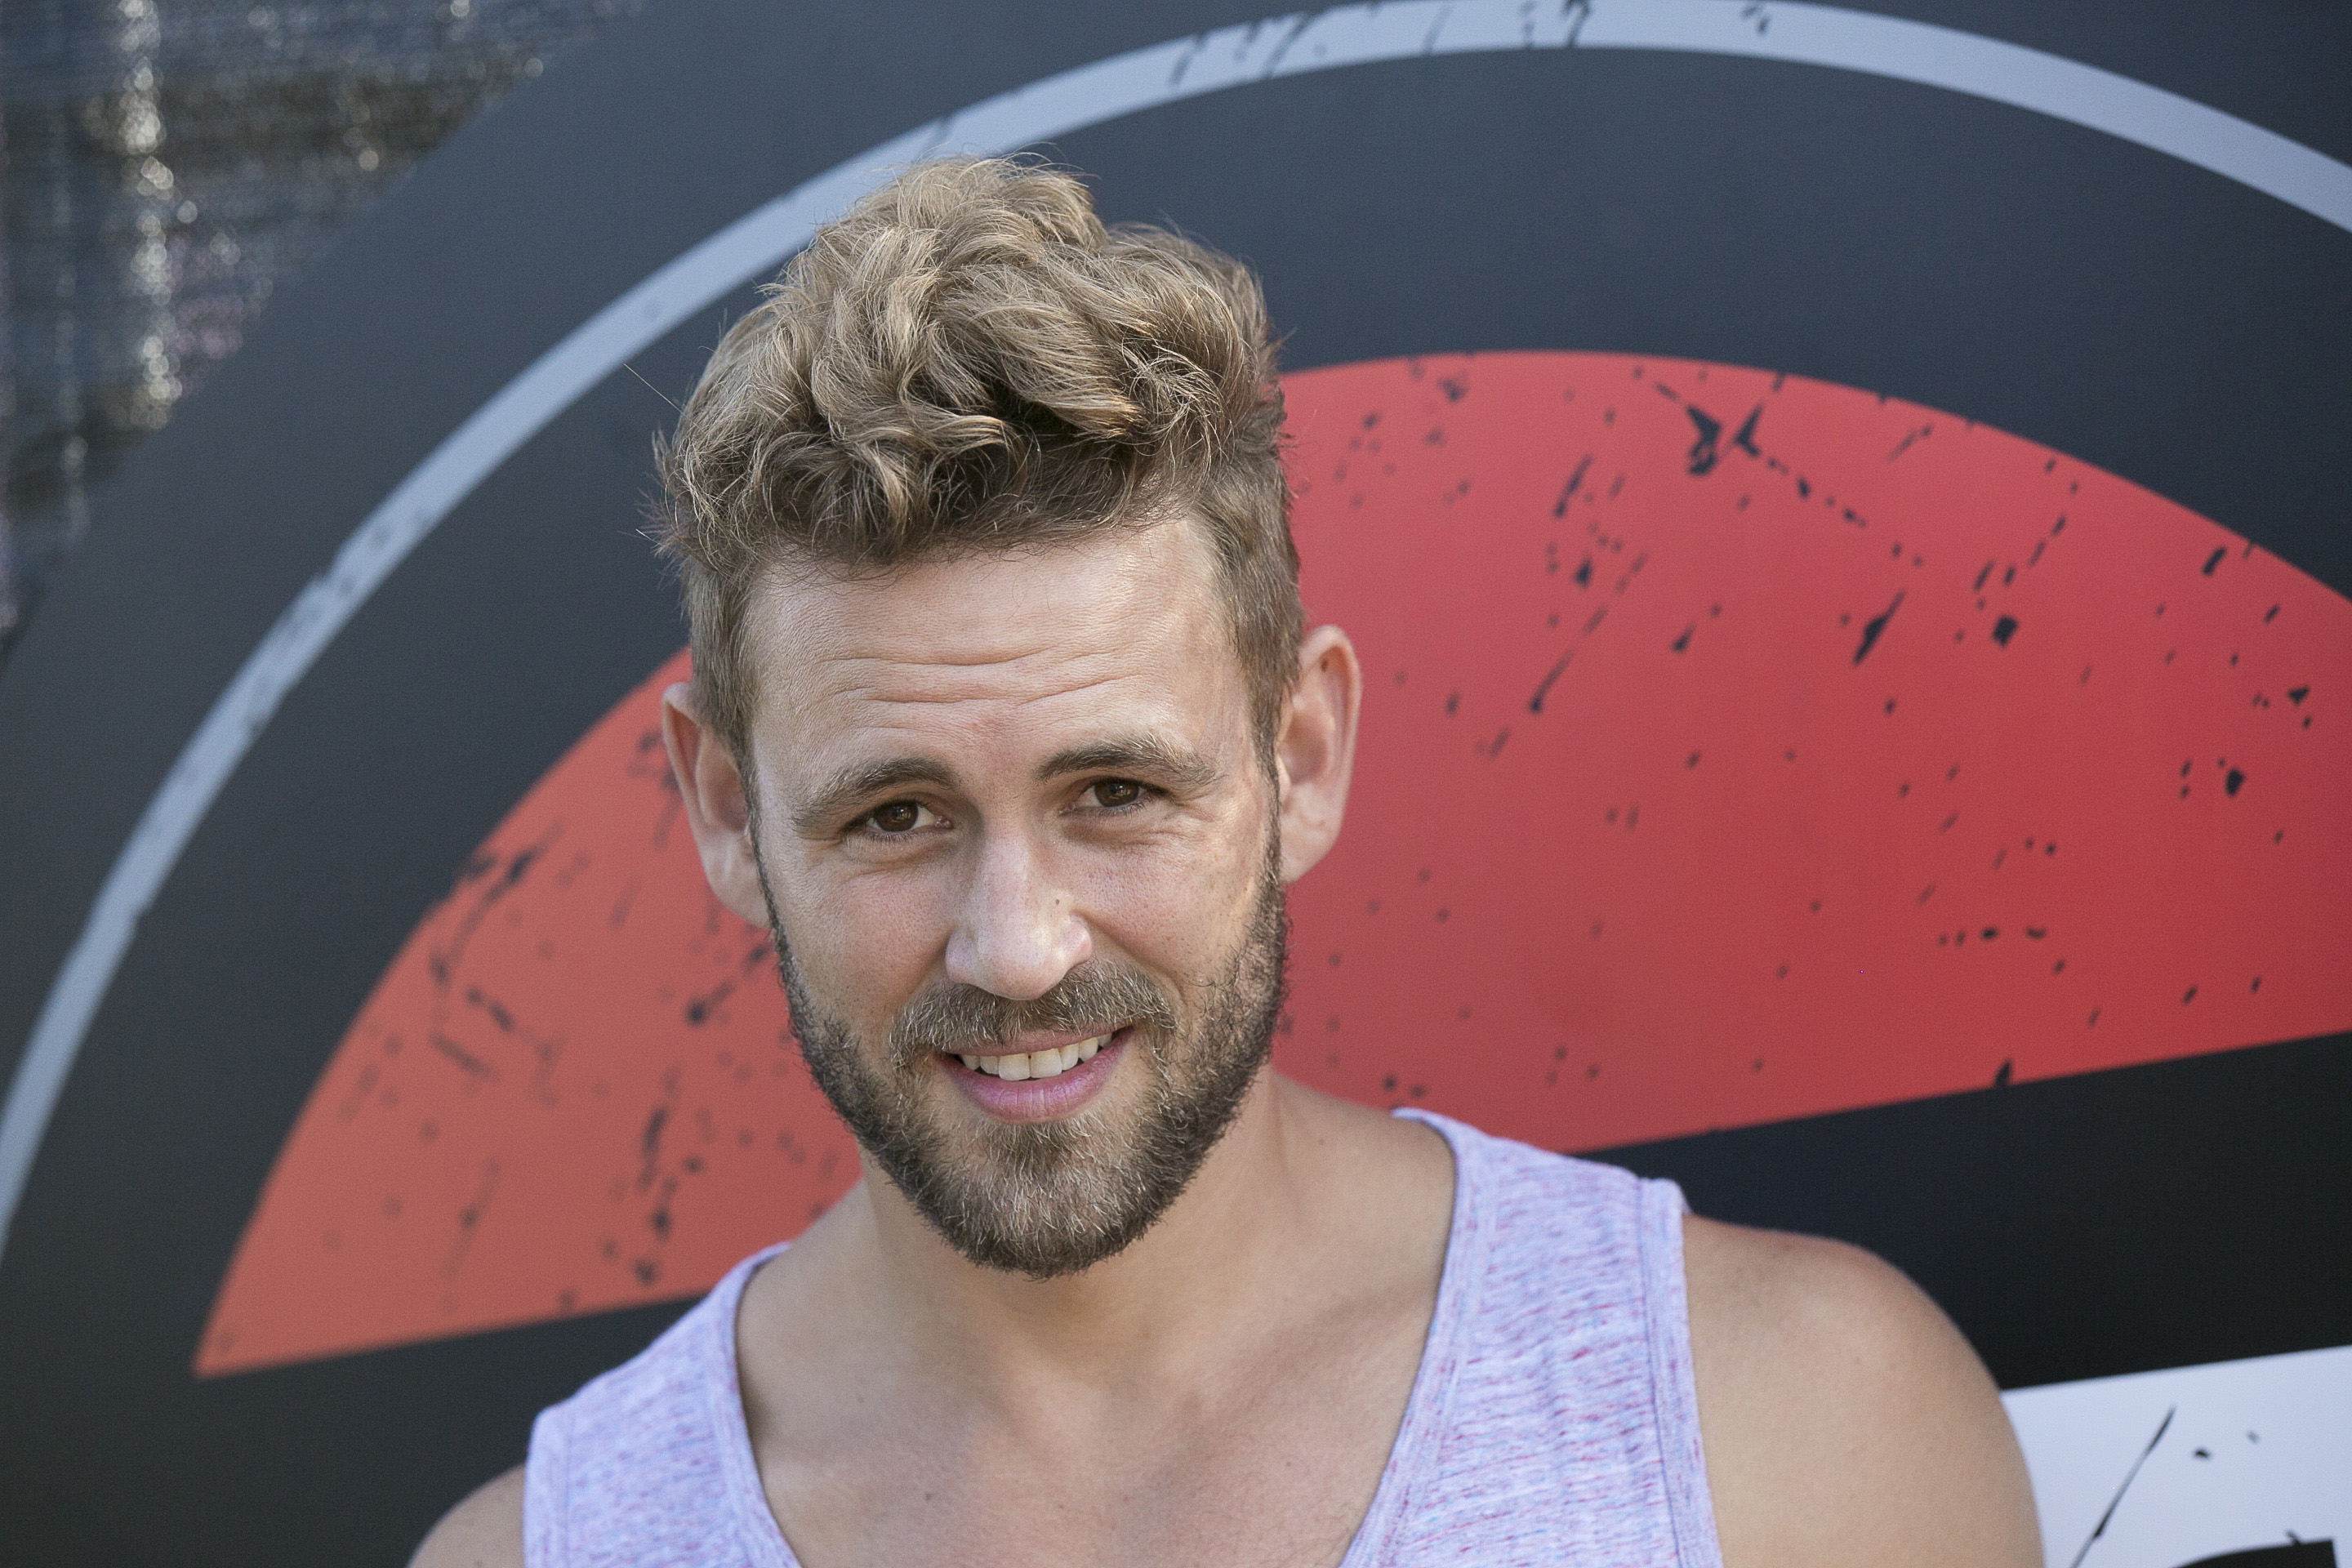 New Bachelor Nick Viall has this to say about sex, and we're not mad about it